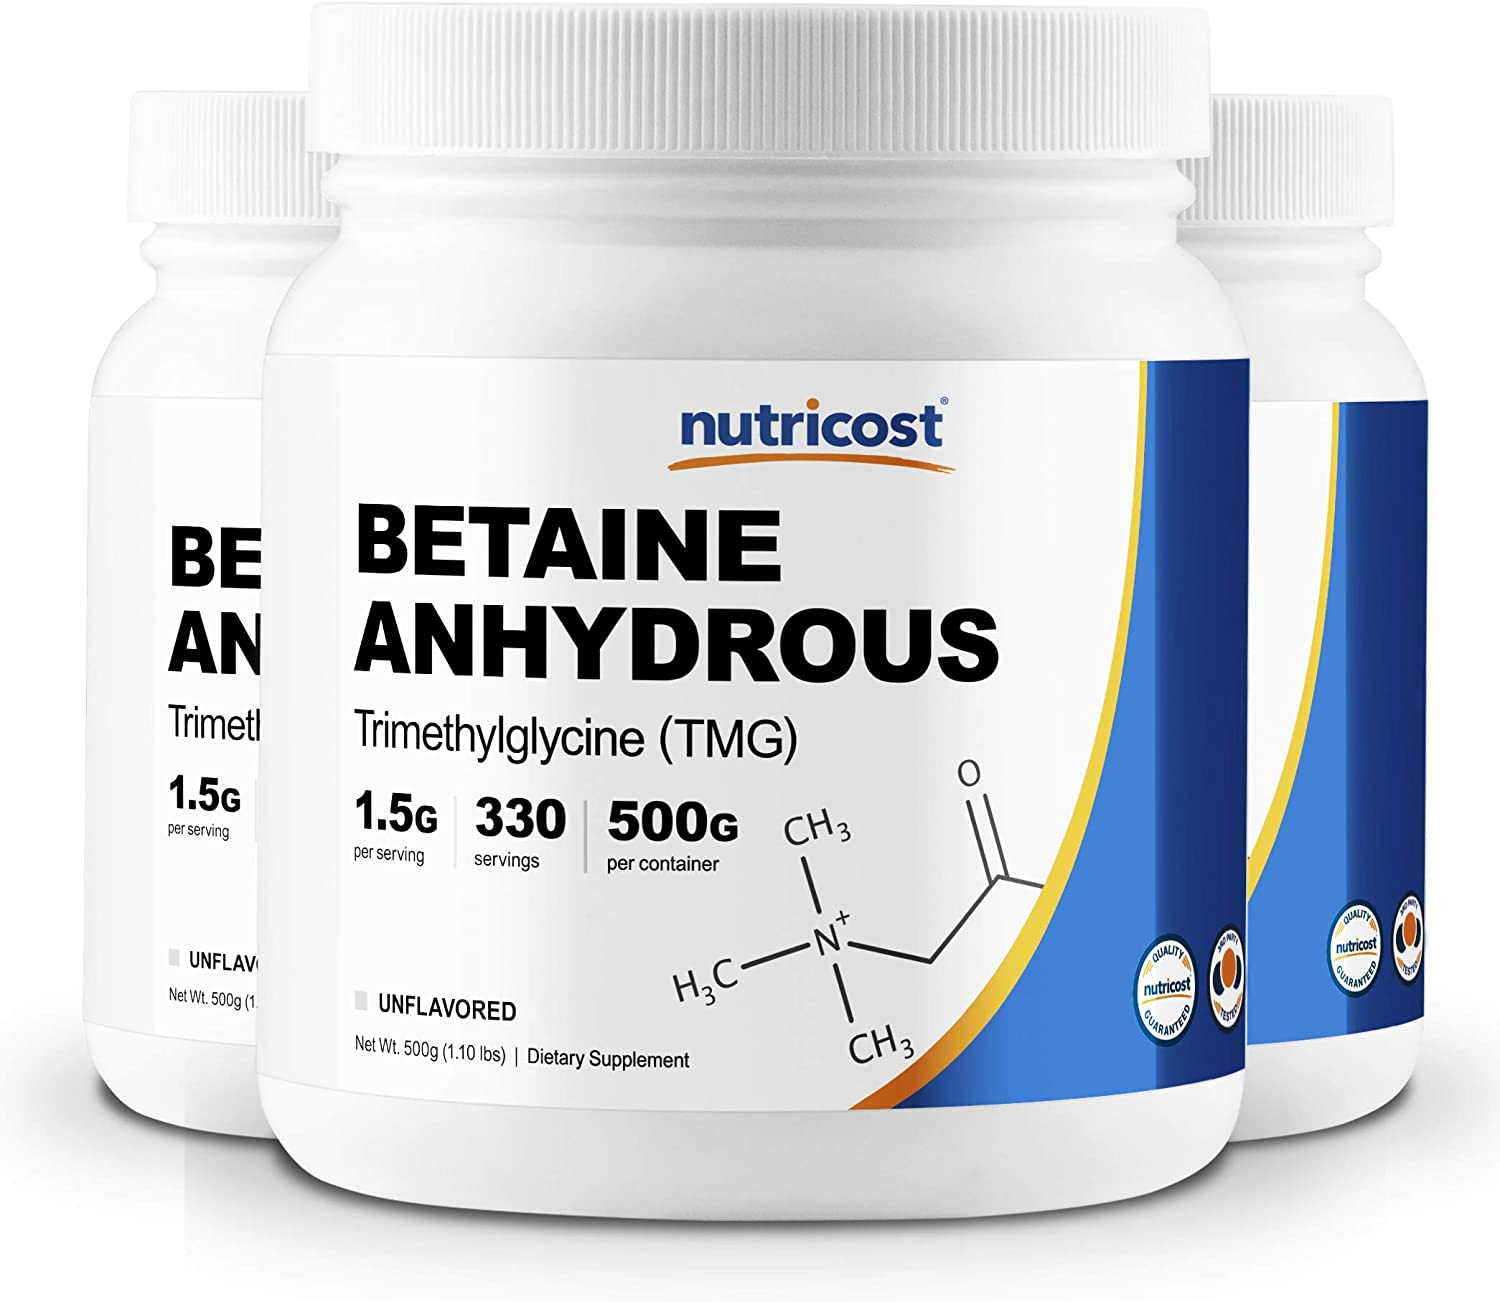 Nutricost Betaine Anhydrous Trimethylglycine TMG Powder 500G 3 Bottles